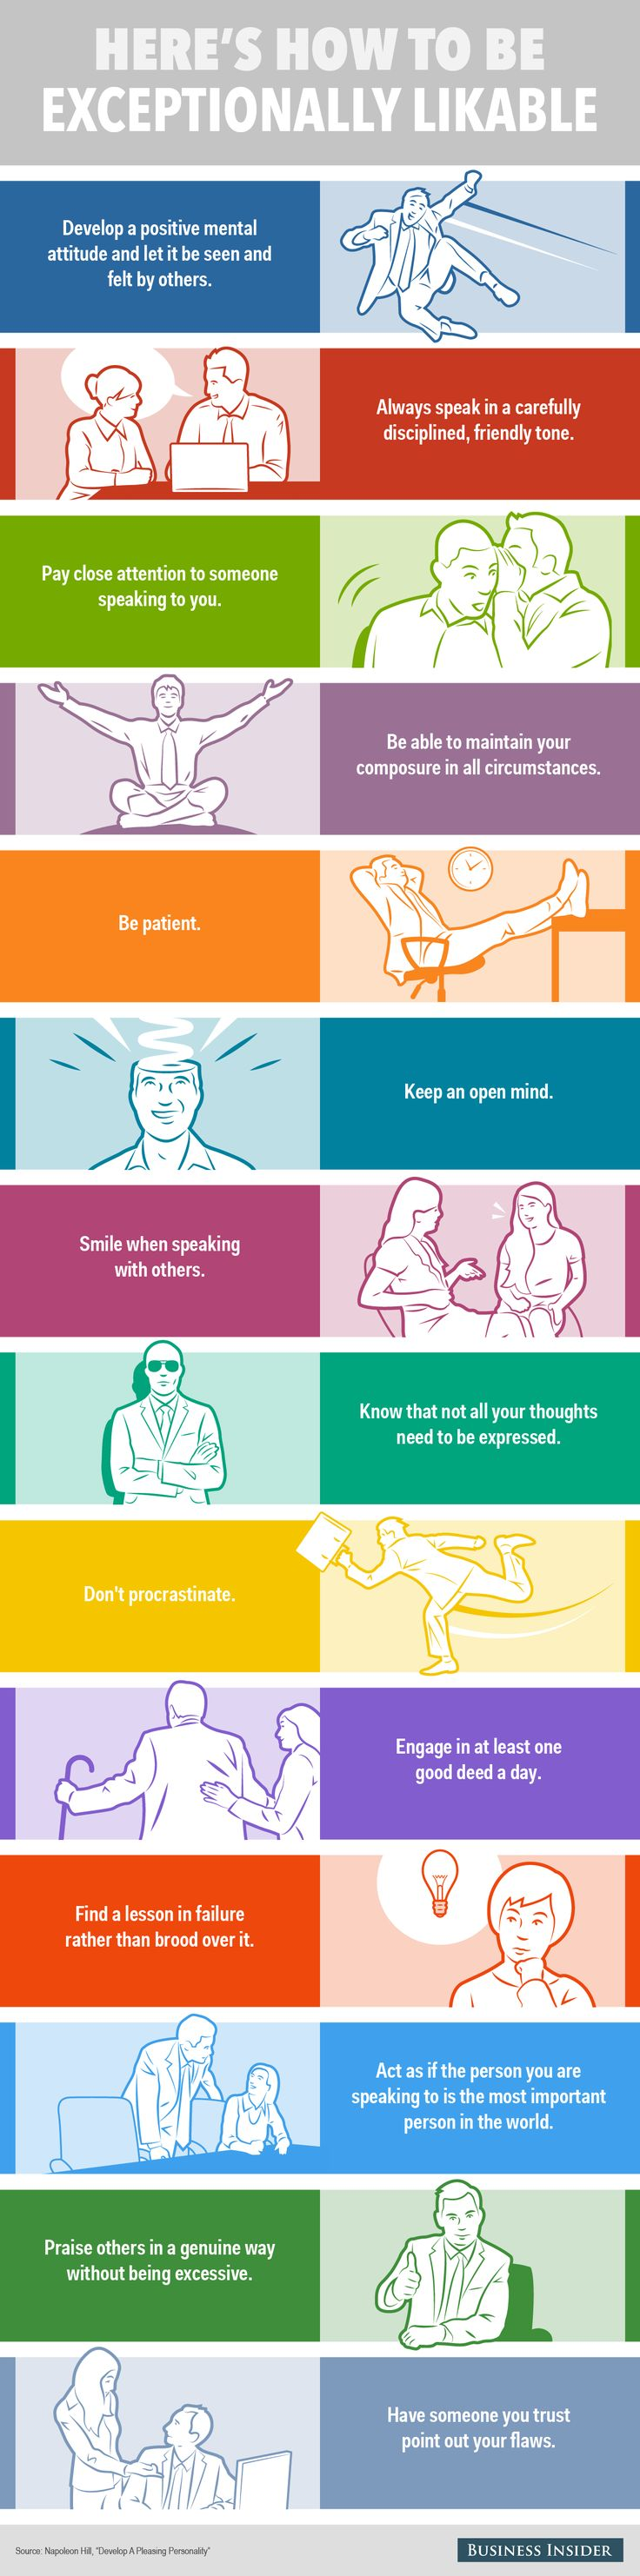 14 habits of exceptionally likable people | Business Insider